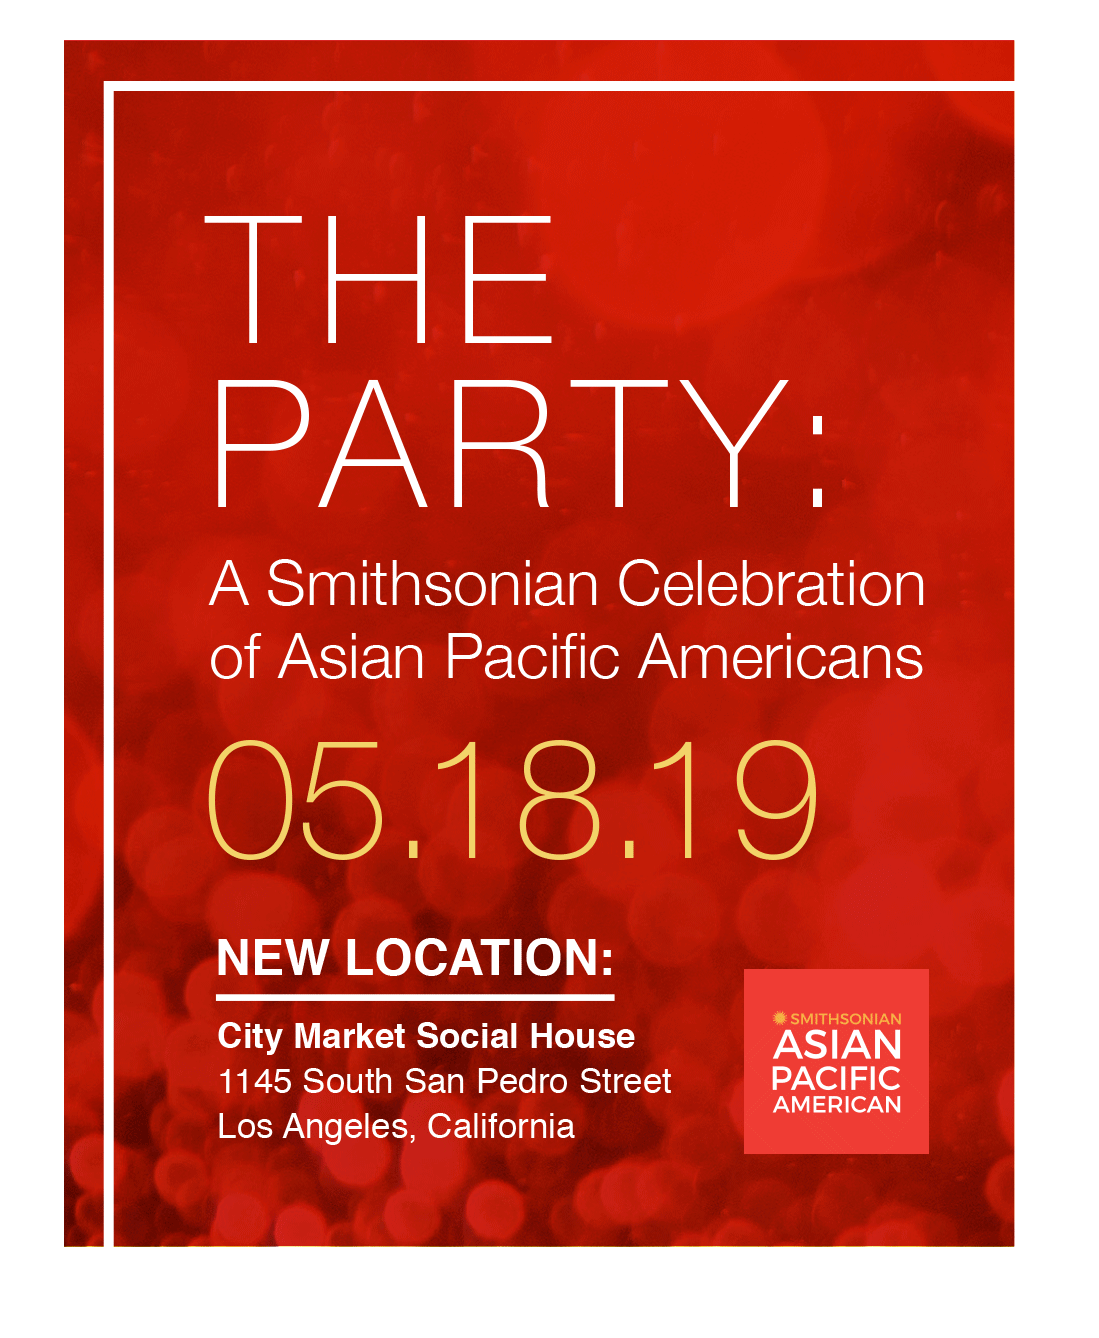 The Party | Smithsonian Asian Pacific American Center